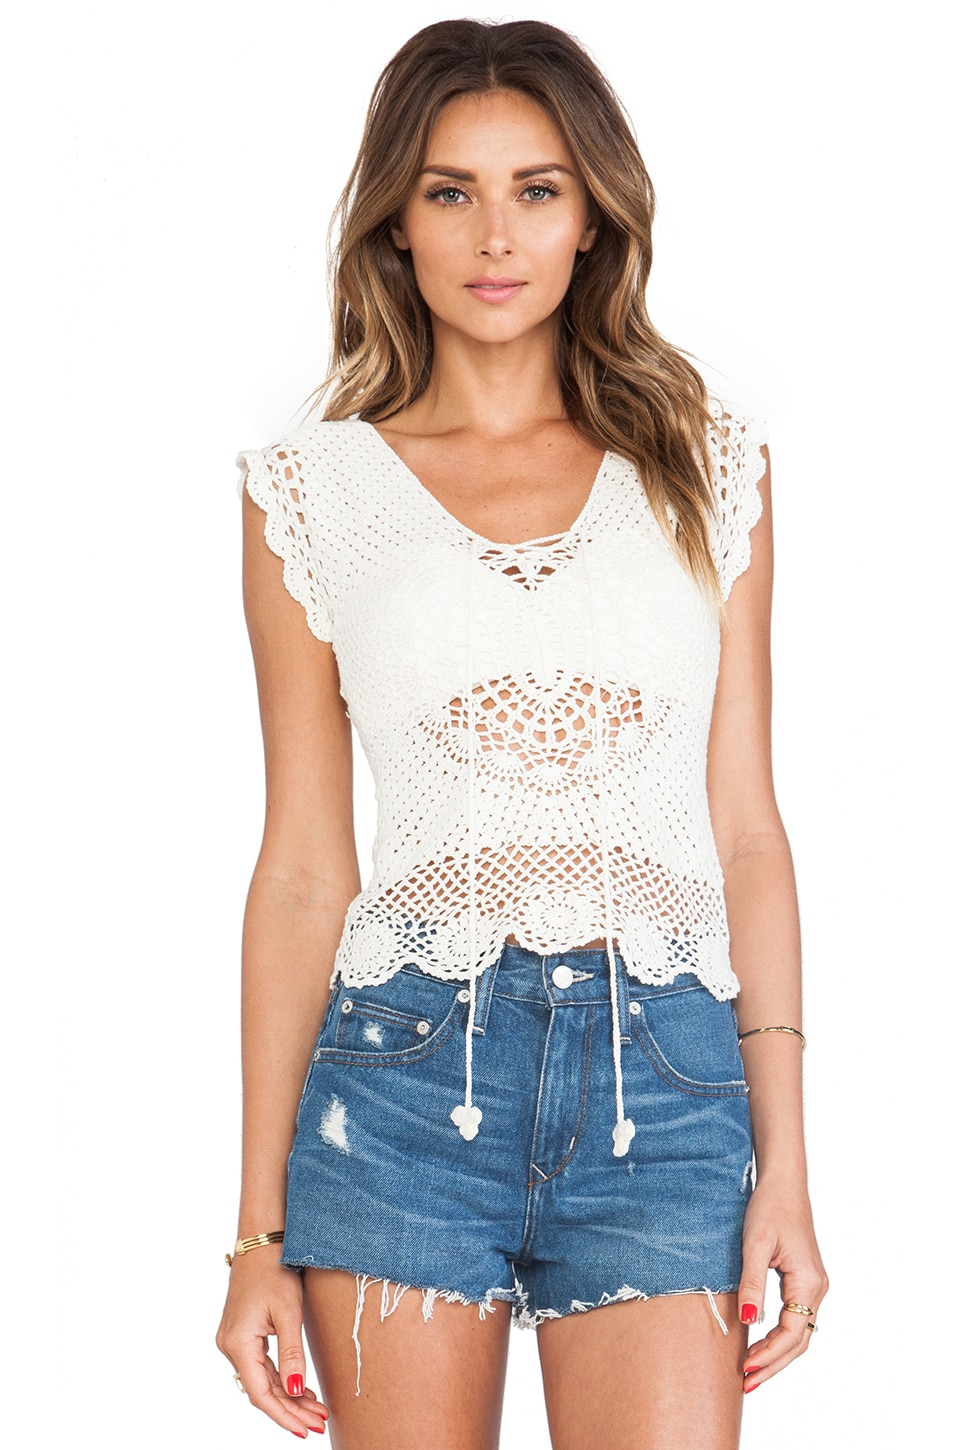 Lisa Maree First in Line Crochet Top in Cream